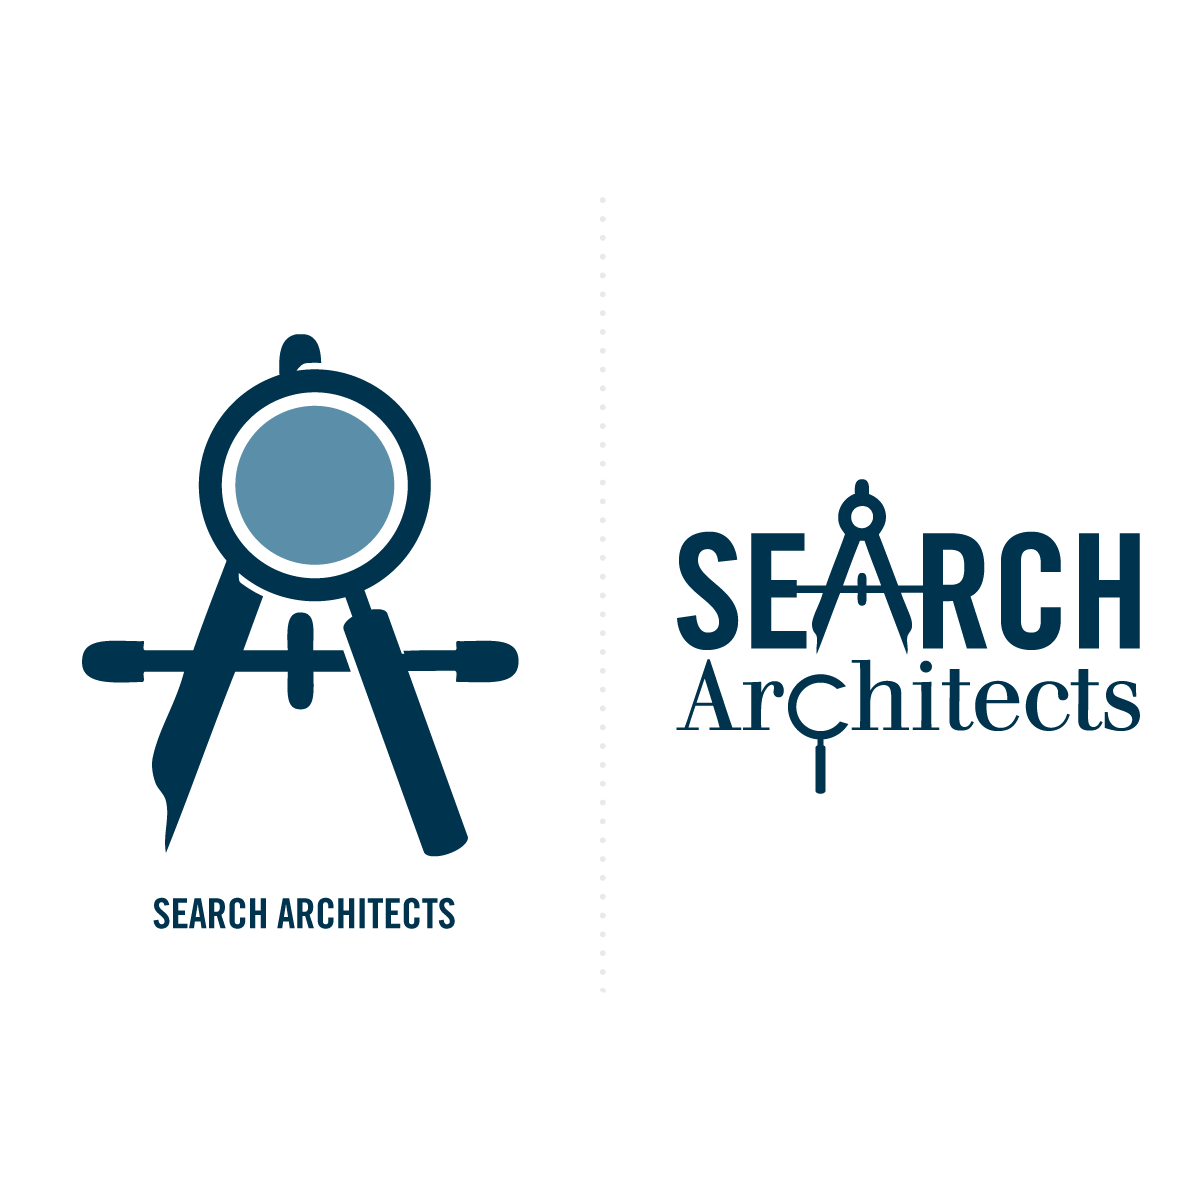 search architects logo wordmark